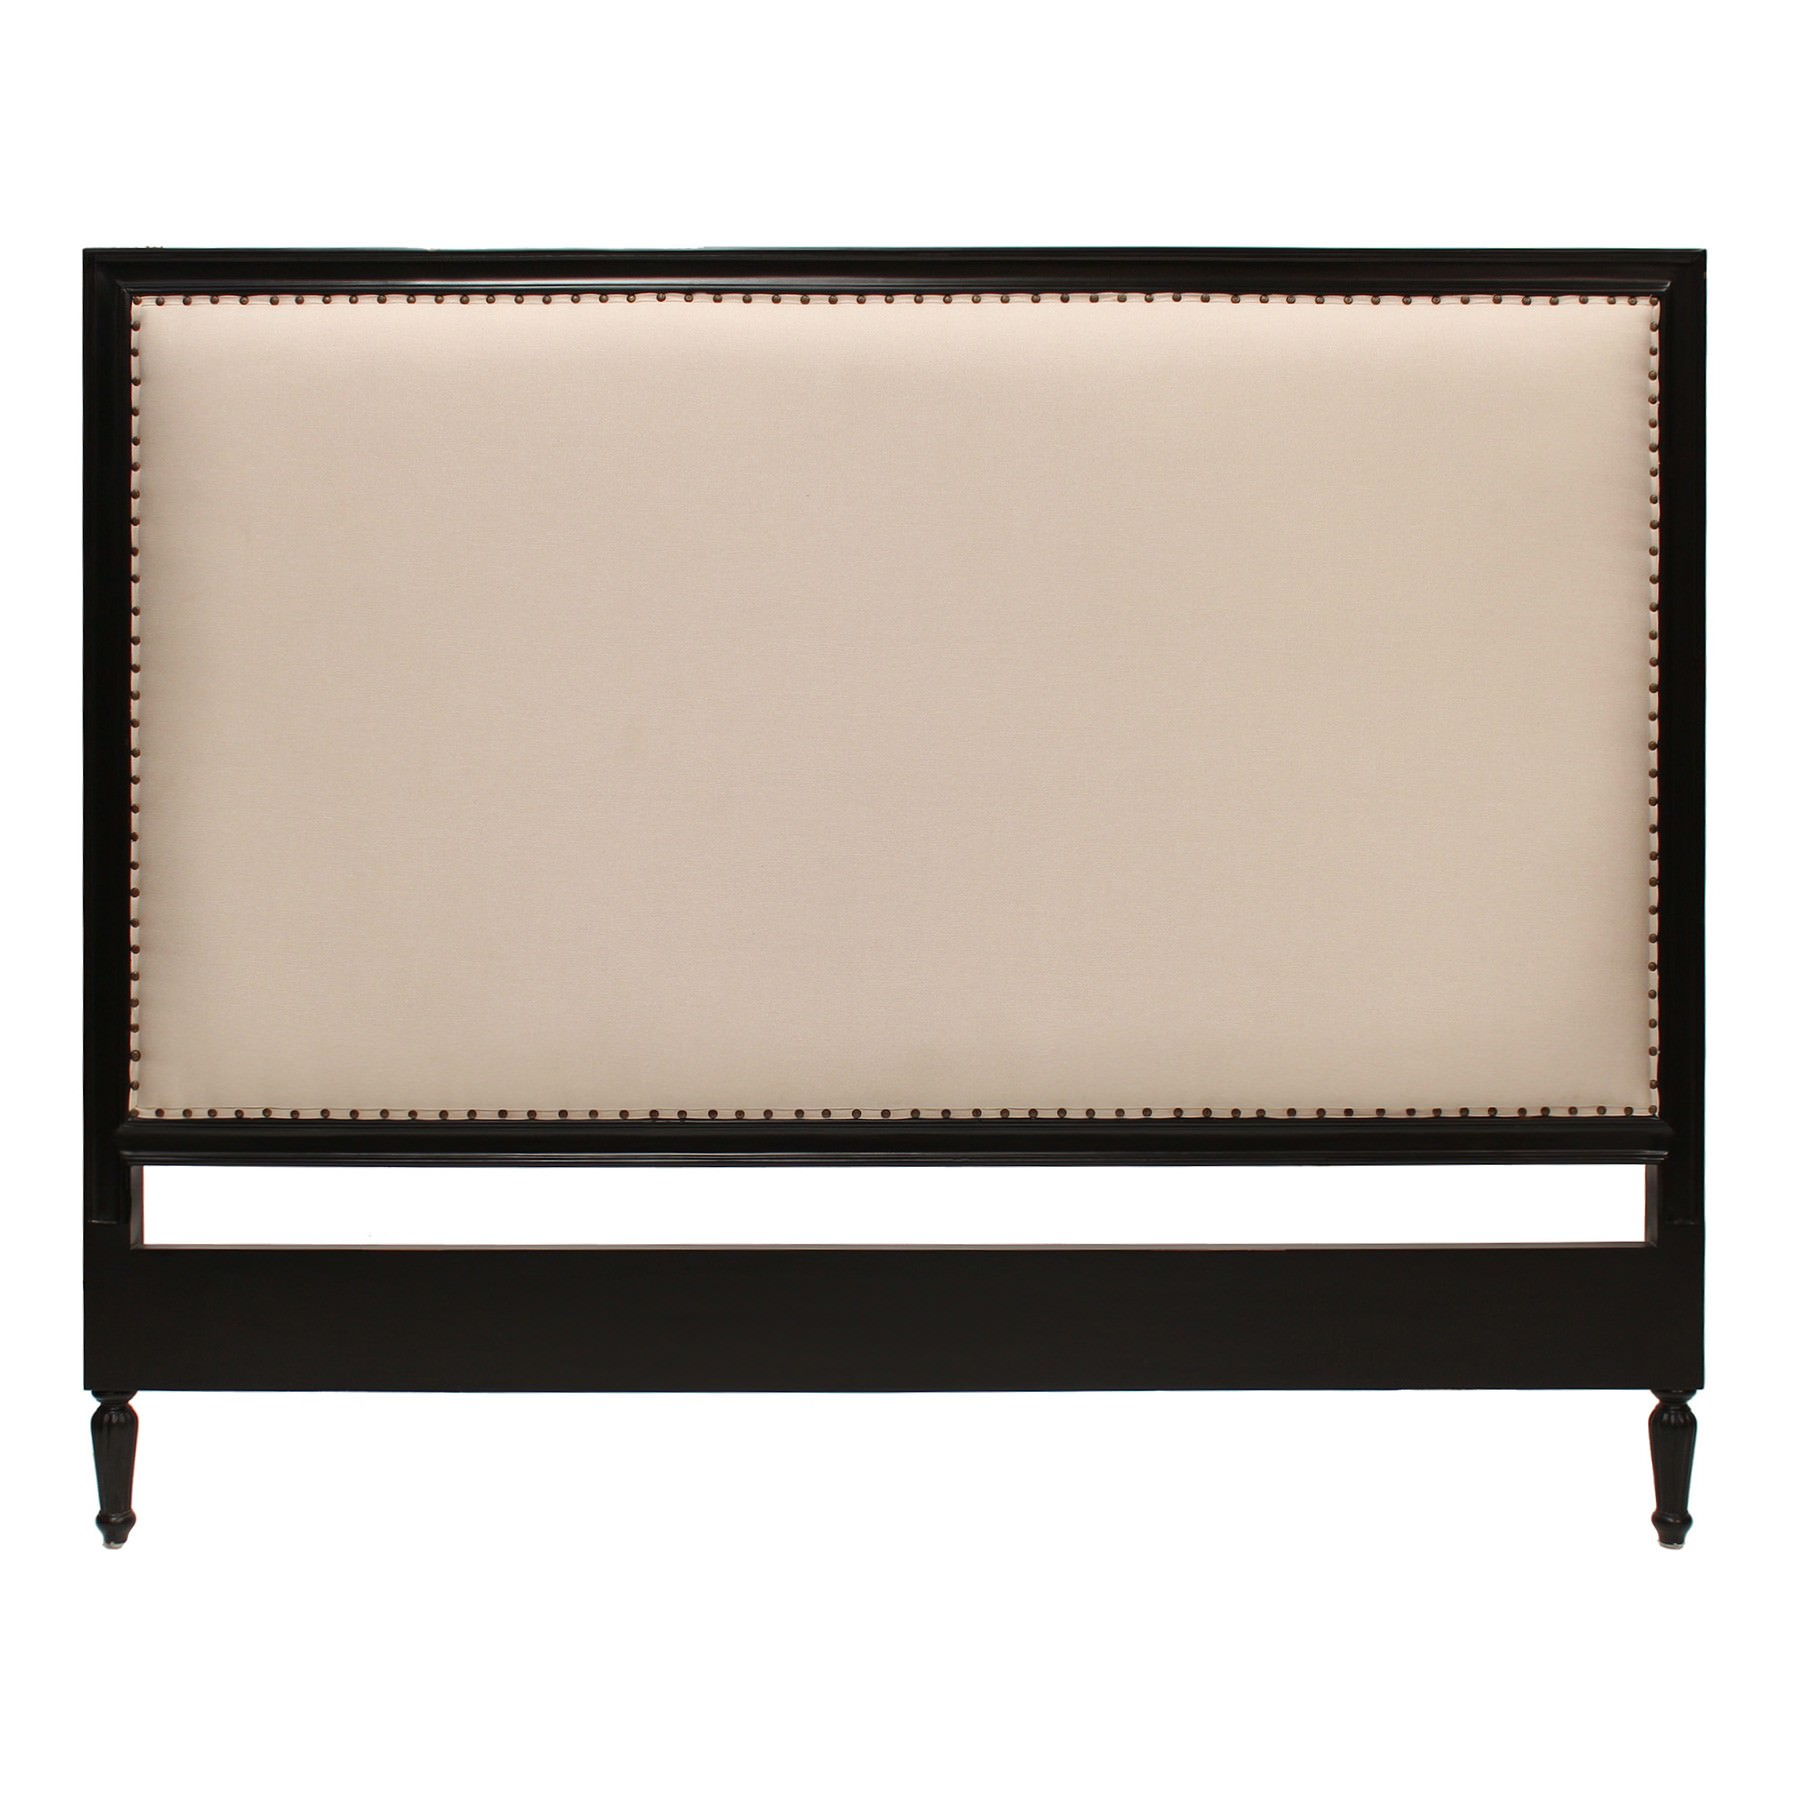 Ygrande Hand Crafted Mahogany Upholstered Queen Size Headboard, Black